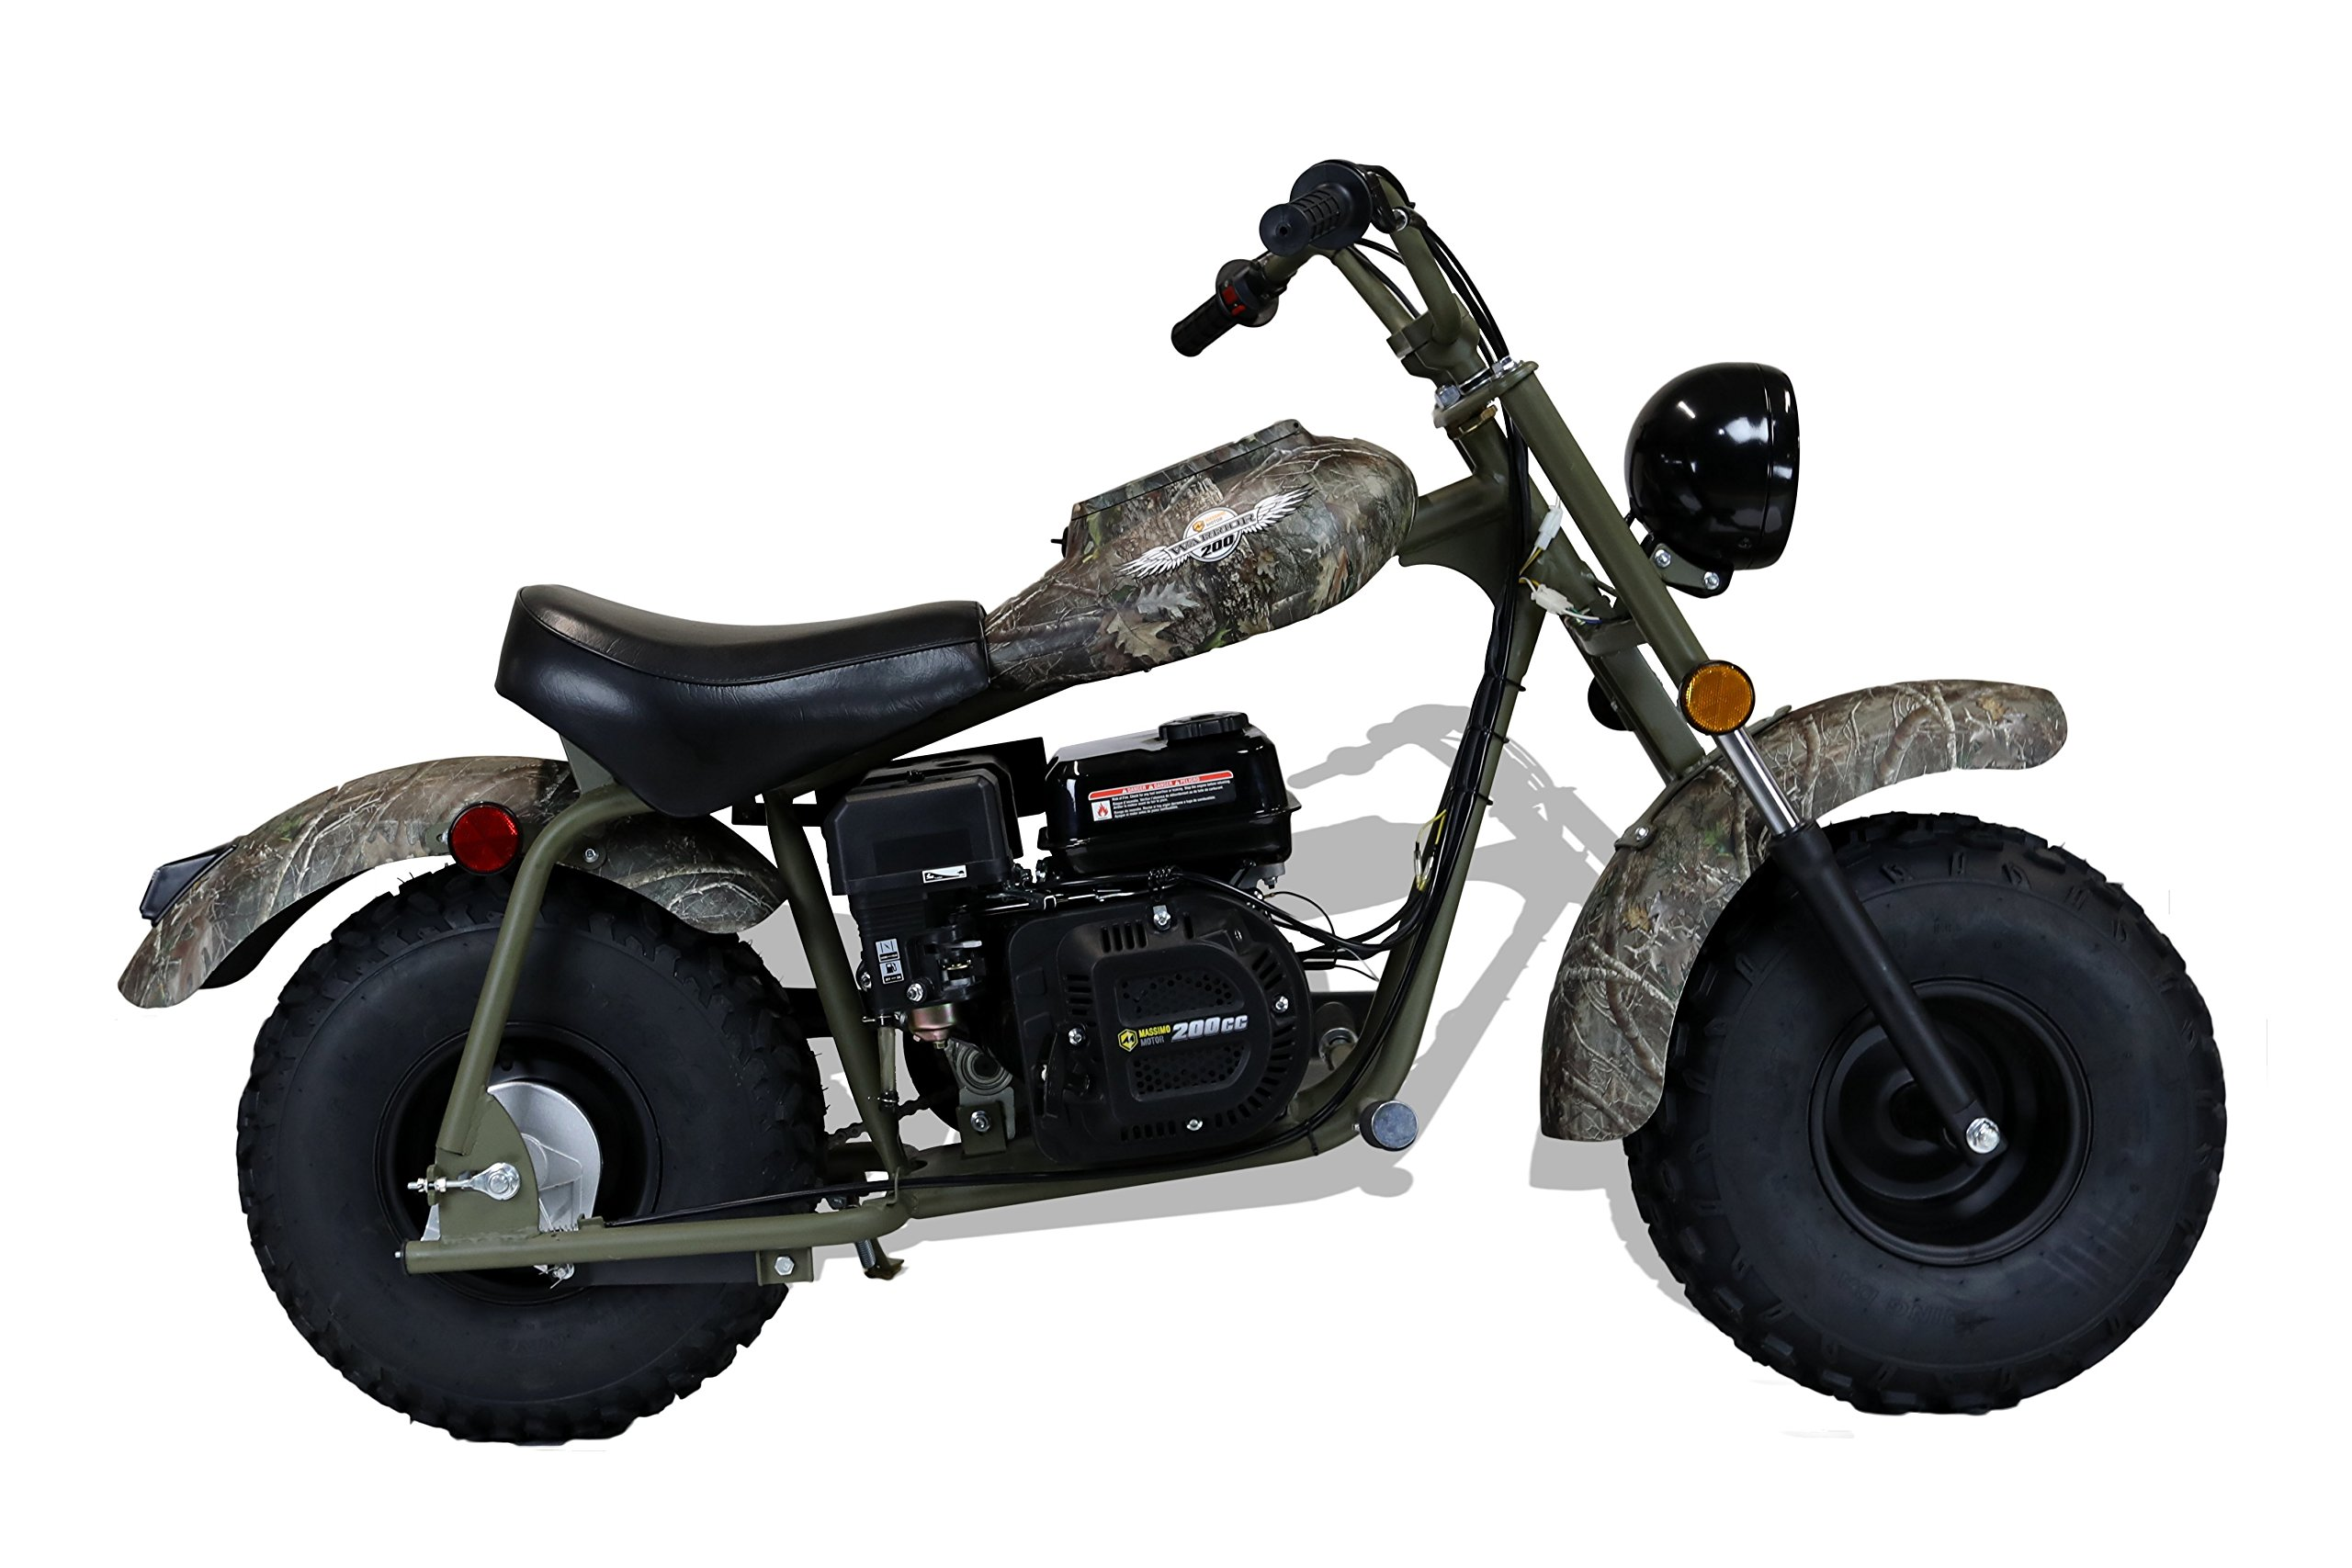 MASSIMO MB200 SUPERSIZED 196CC MINI BIKE - SHIPPING & WARRANTY INCLUDED! by M MASSIMO MOTOR (Image #5)